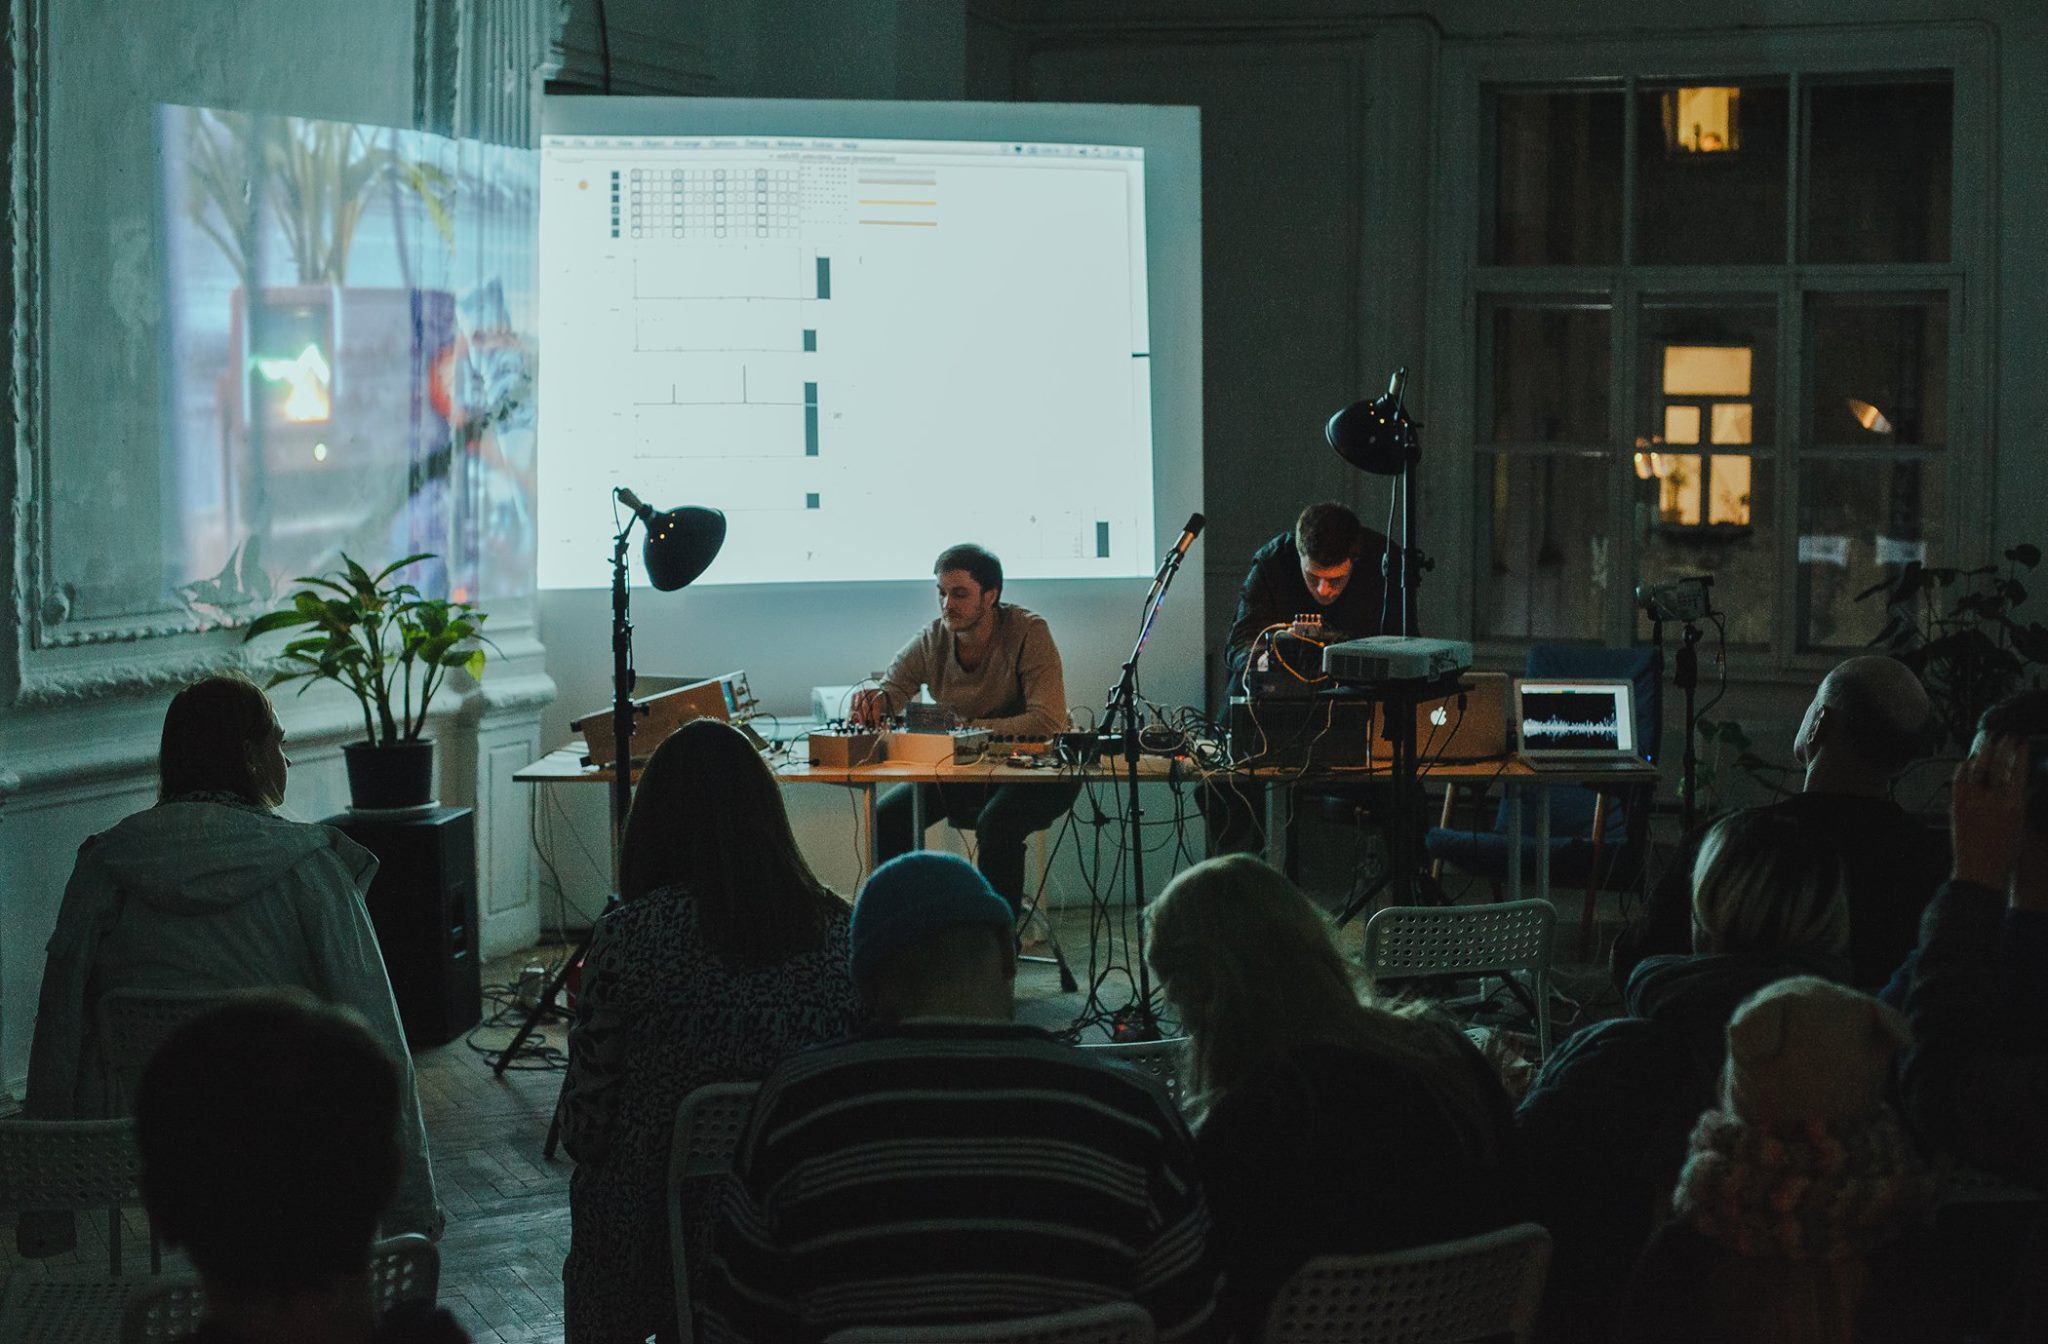 CYFEST Sound Art Workshop